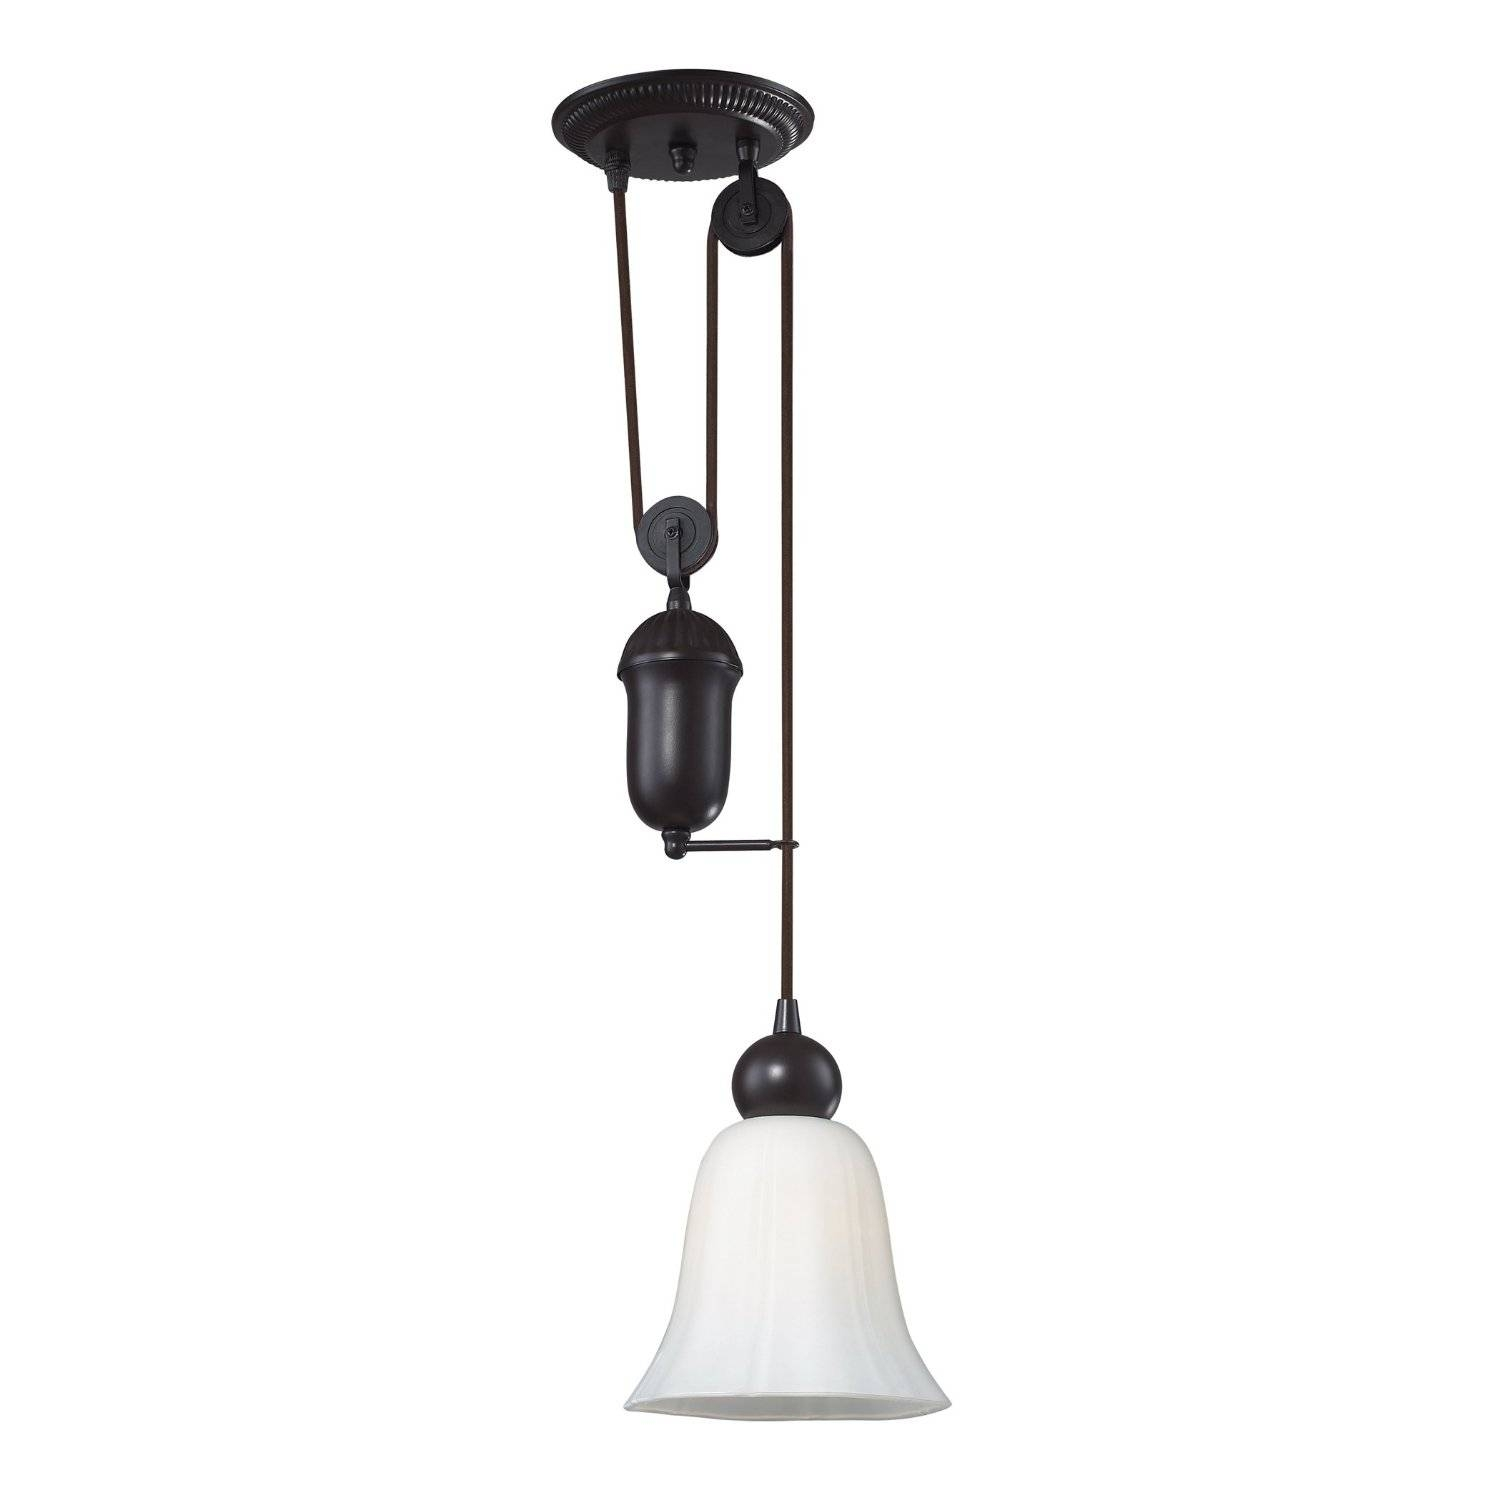 Pendant Lighting : Double Pulley Pendant Light Enchanting Mid intended for Cb2 Pendant Lighting (Image 10 of 15)